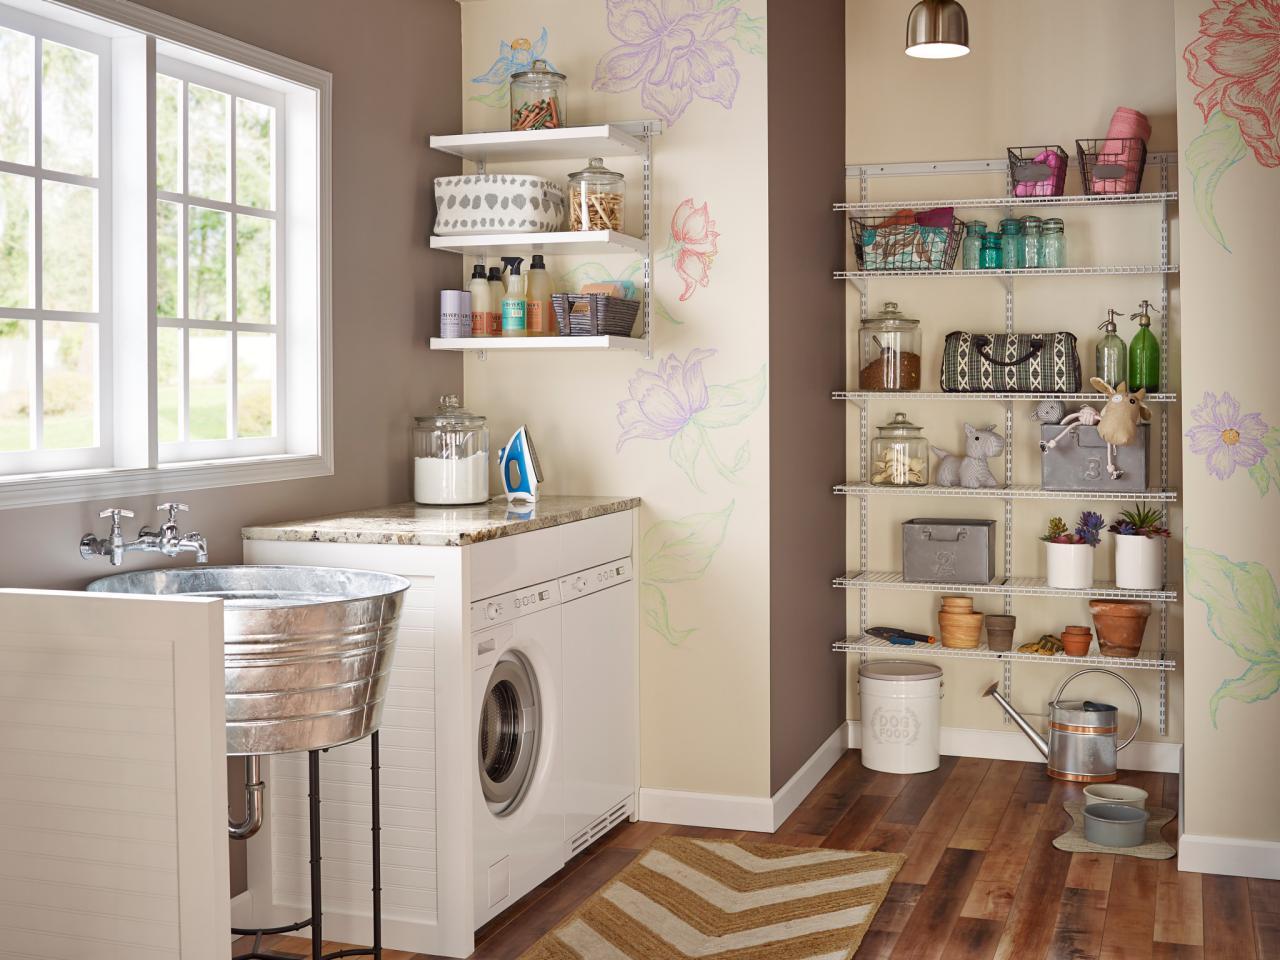 Top three things you need to know about laundry room storage solutions